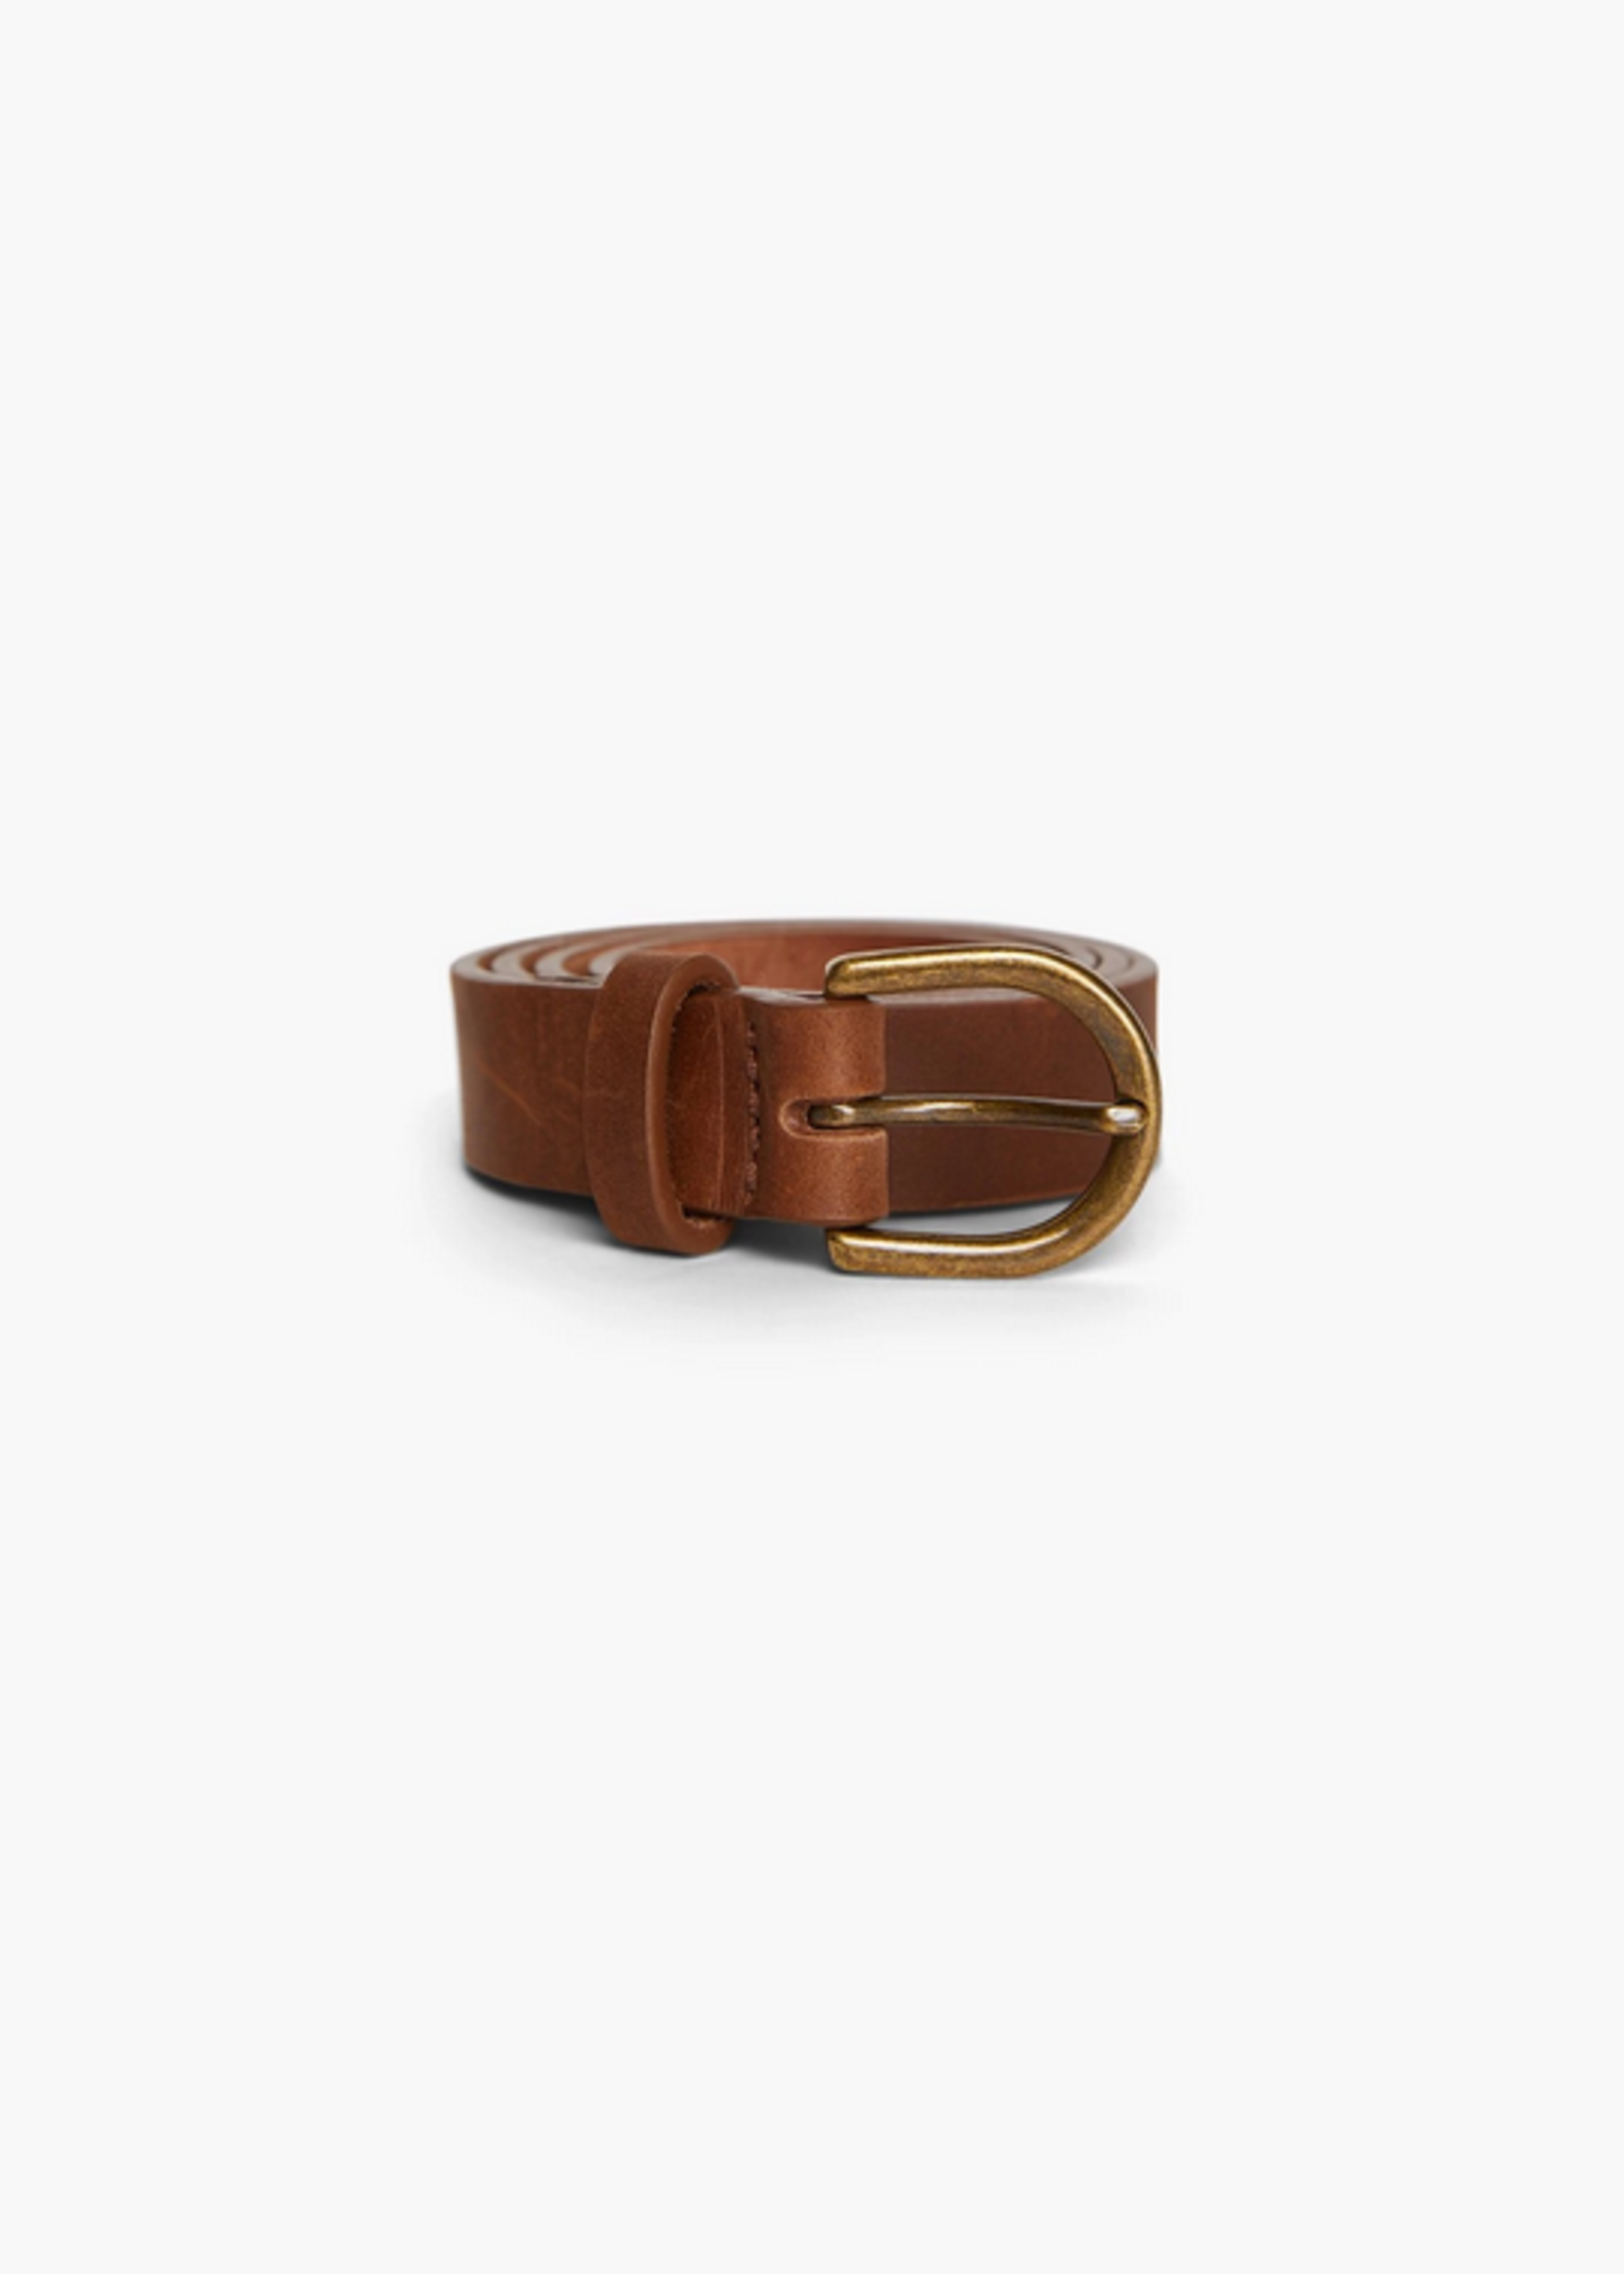 Elitaire Boutique Roseli Belt in Whiskey